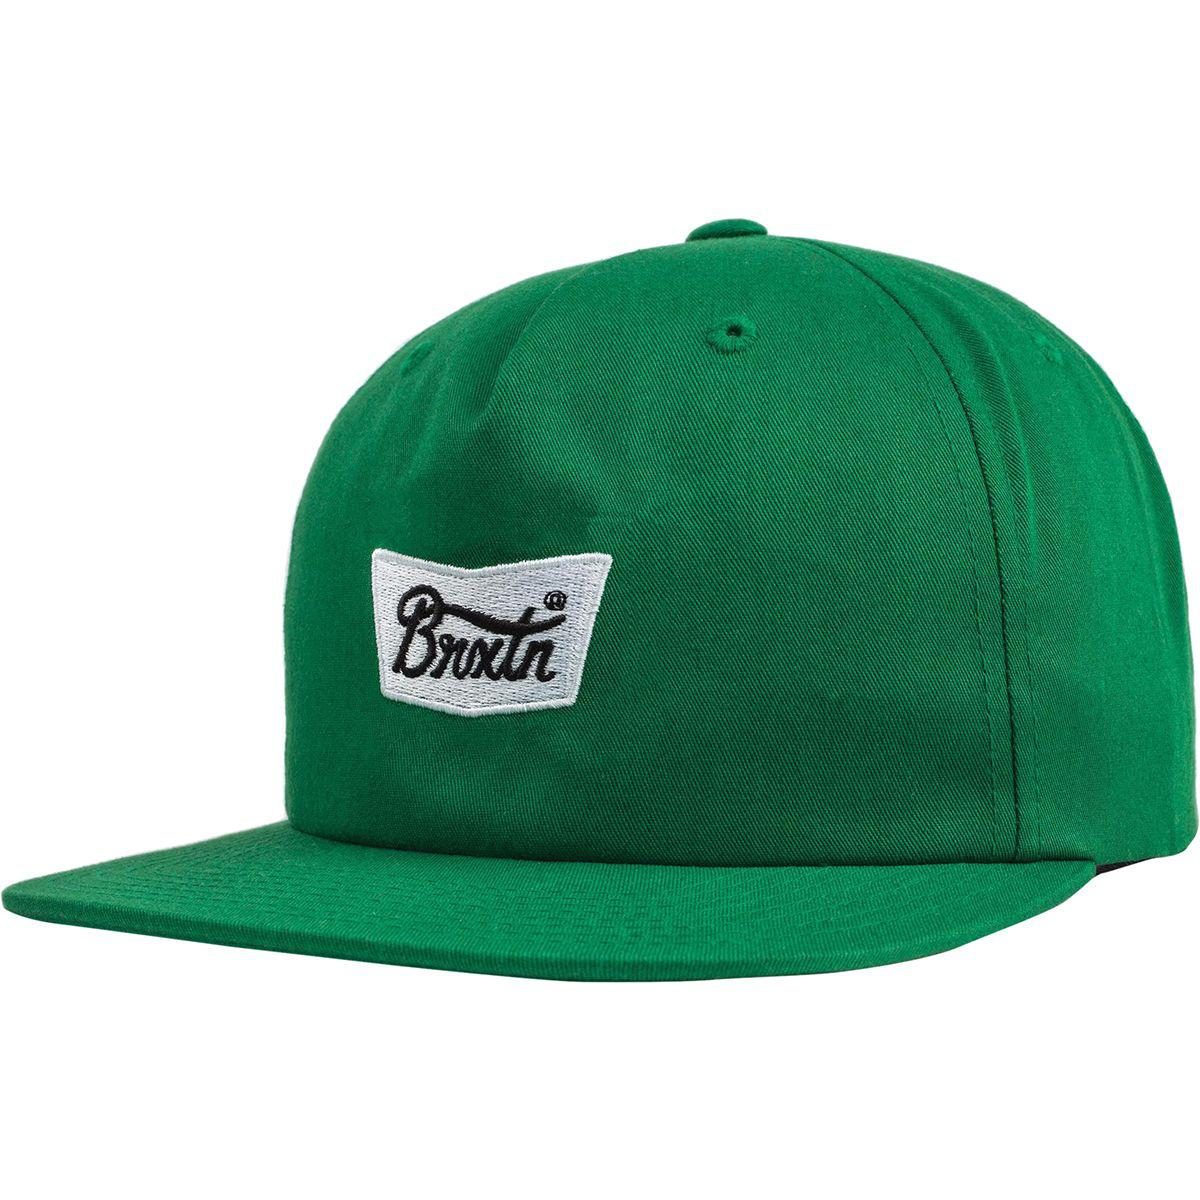 a0938cbbefe Lyst - Brixton Stith Snapback Hat in Green for Men